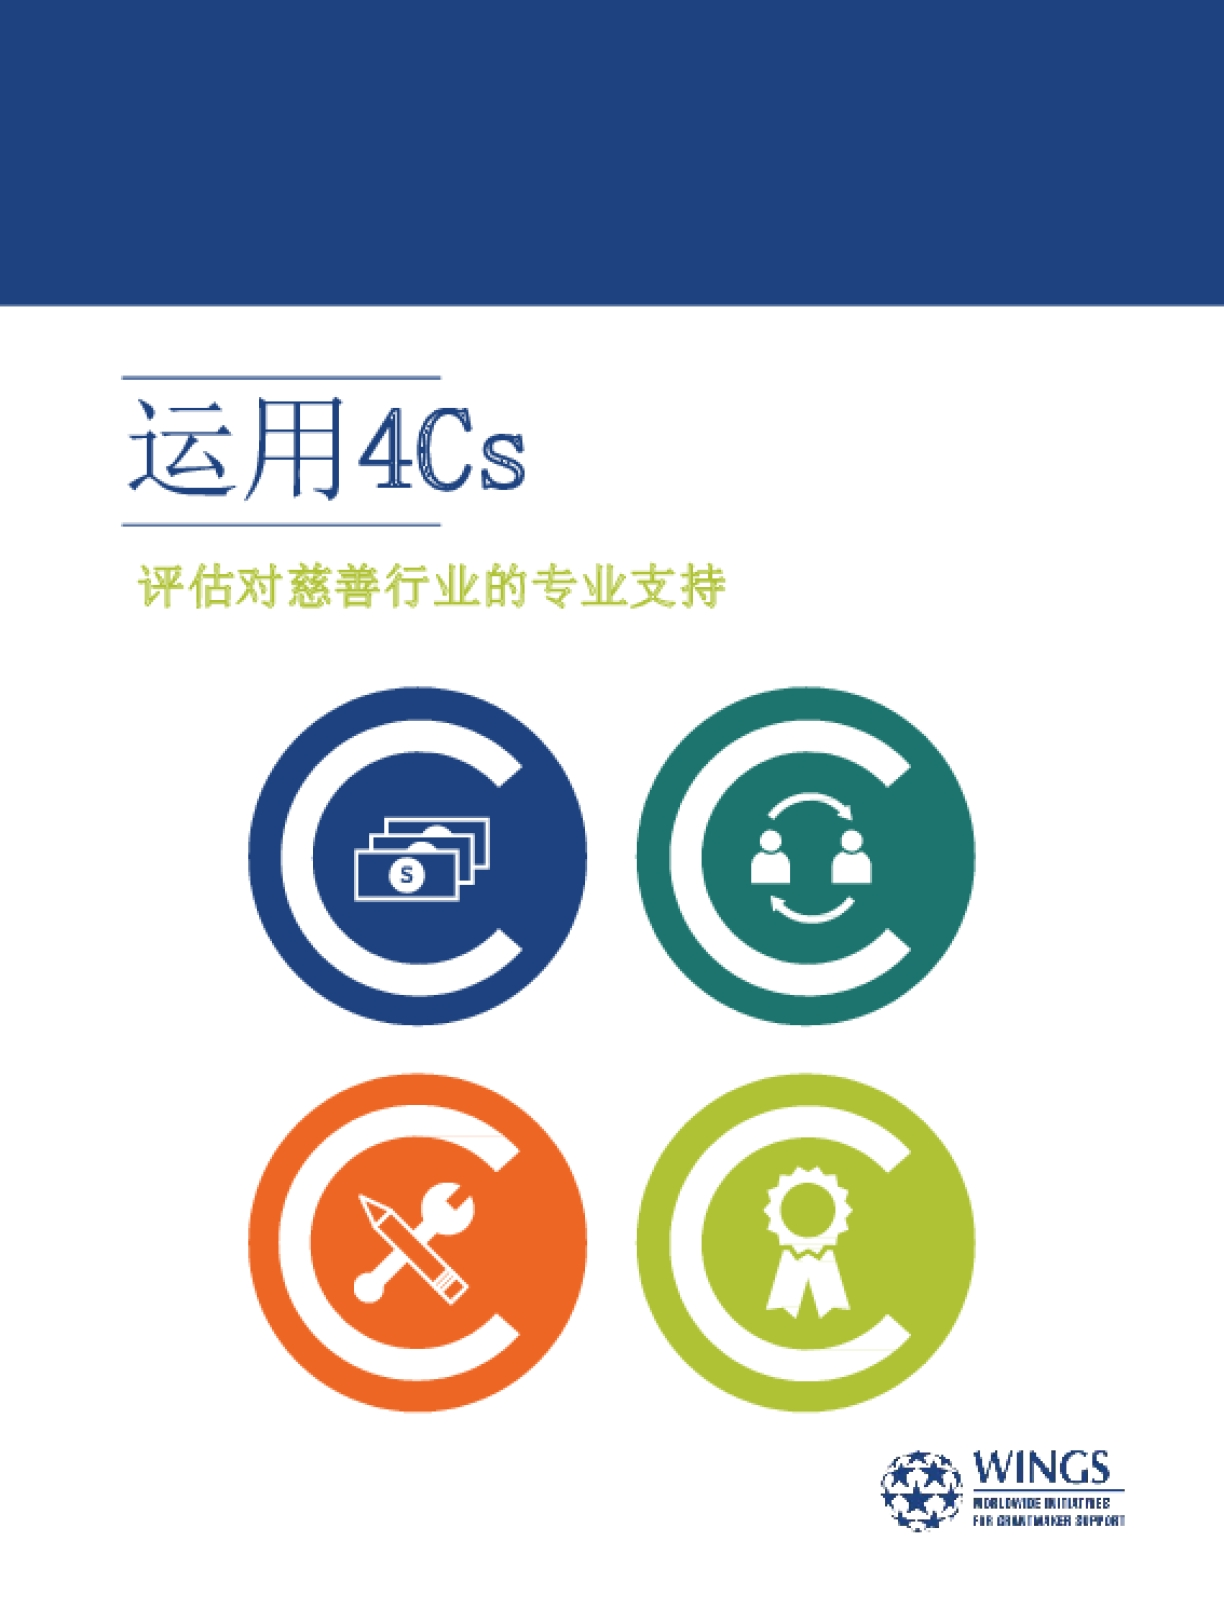 Using the 4Cs: Evaluating Professional Support to Philanthropy - Mandarin Chinese Version